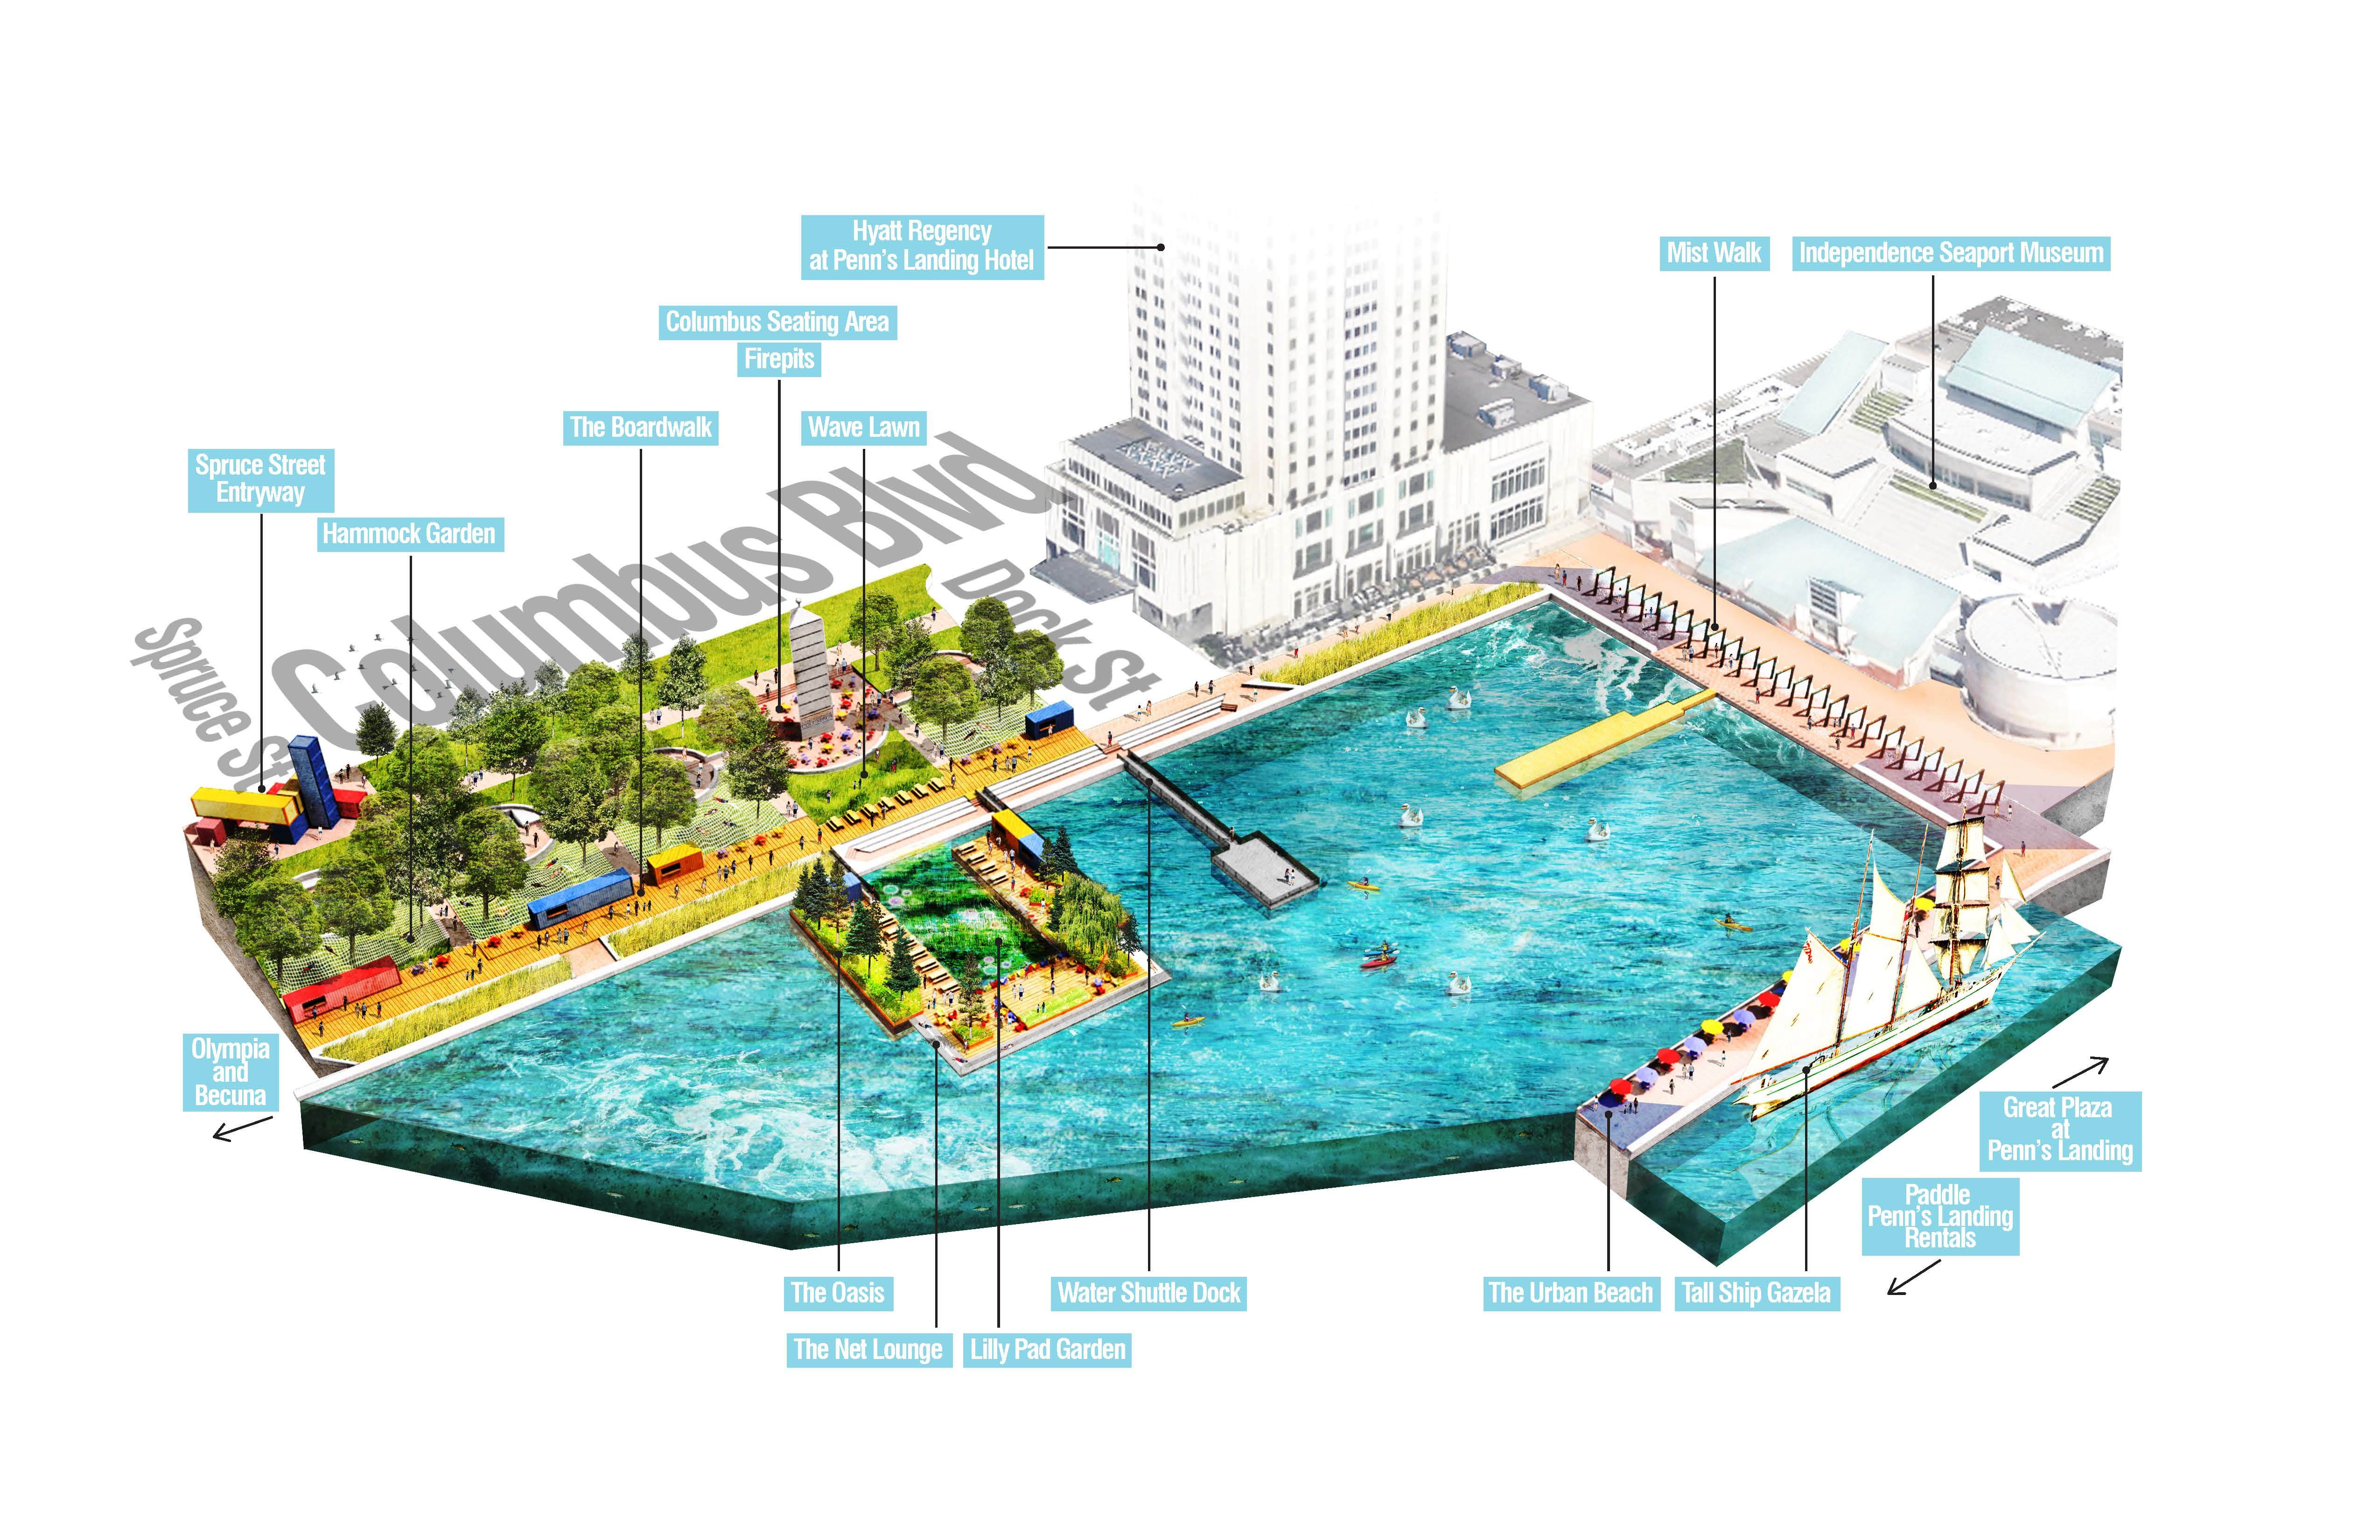 Spruce Street Harbor Park map